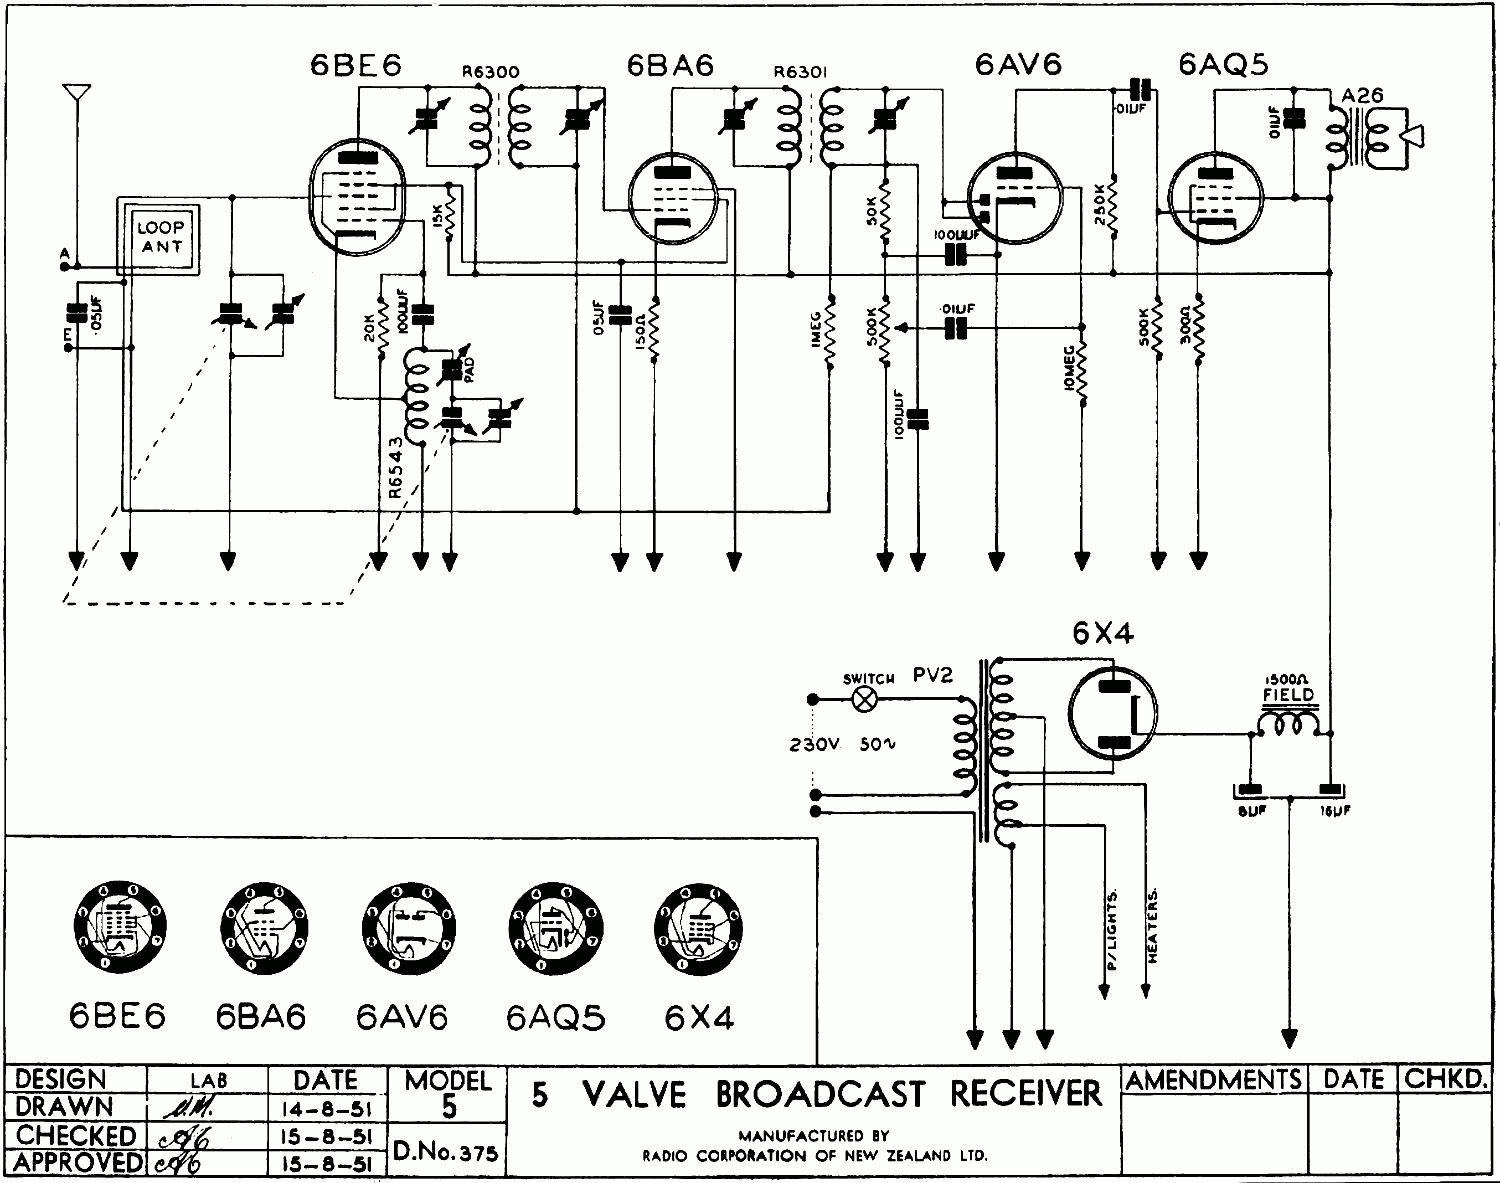 1950 Columbus model 5 later schematic